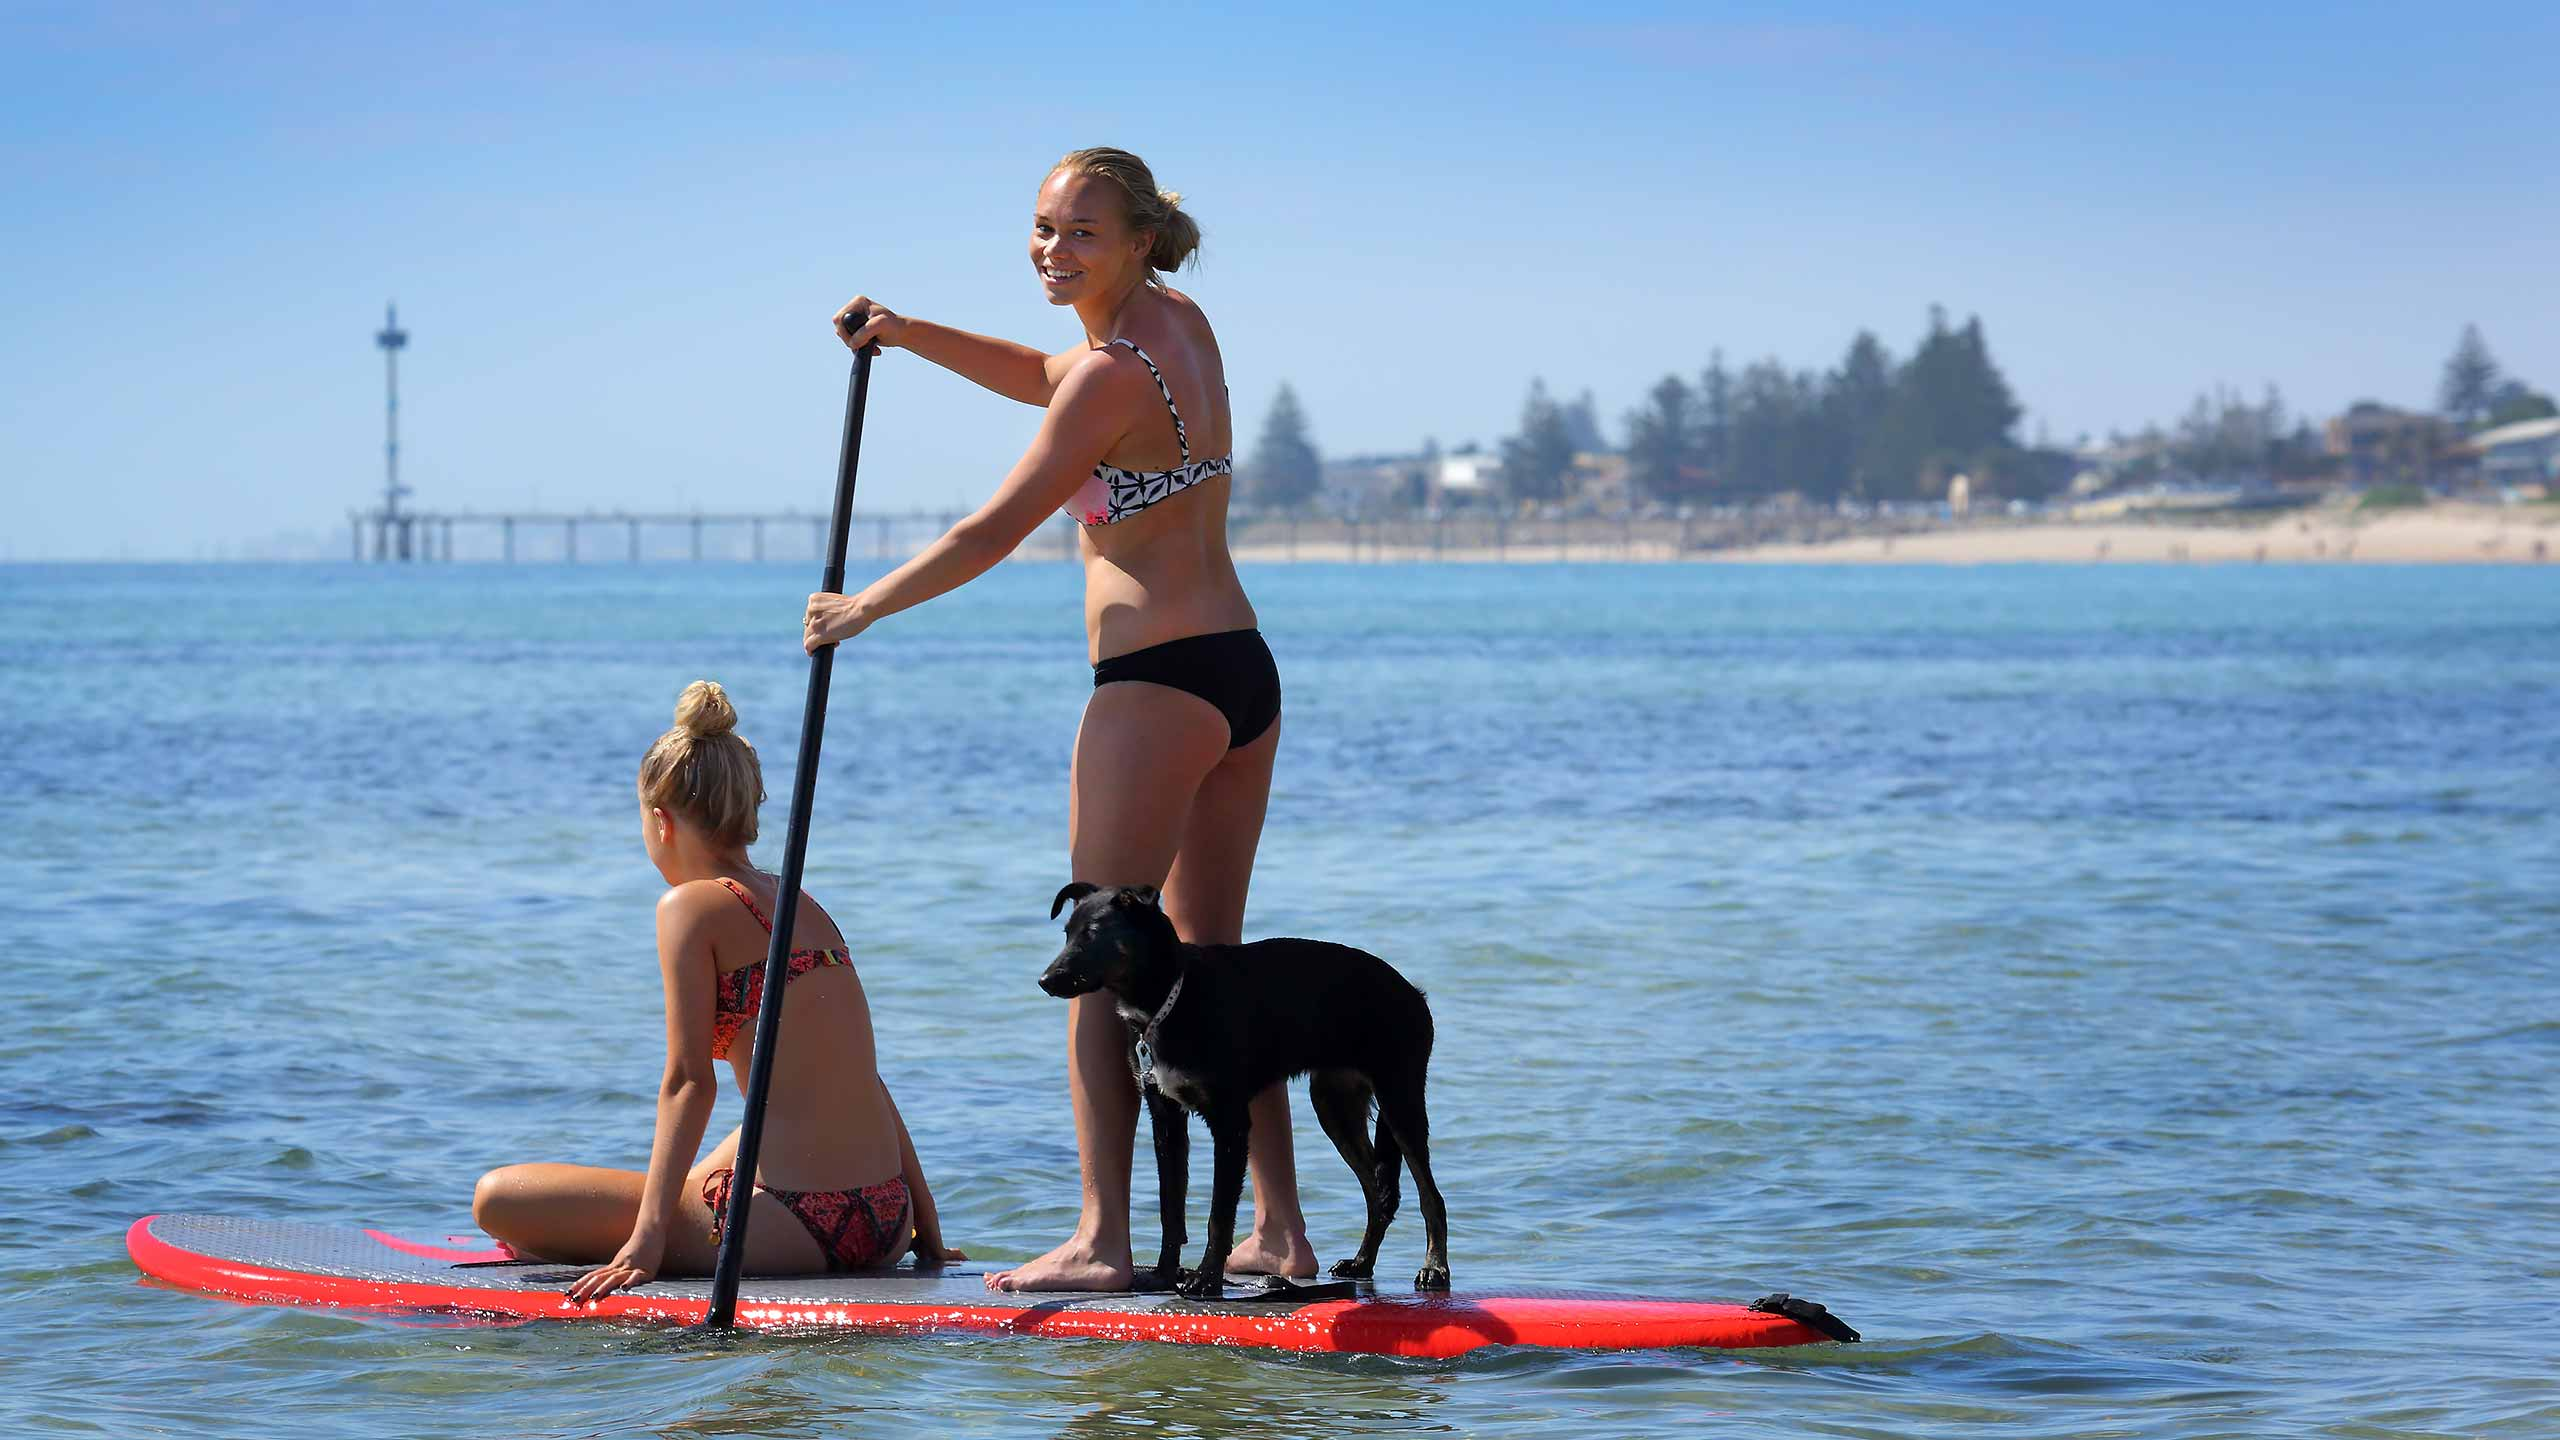 brighton-paddle-boarding-adelaide